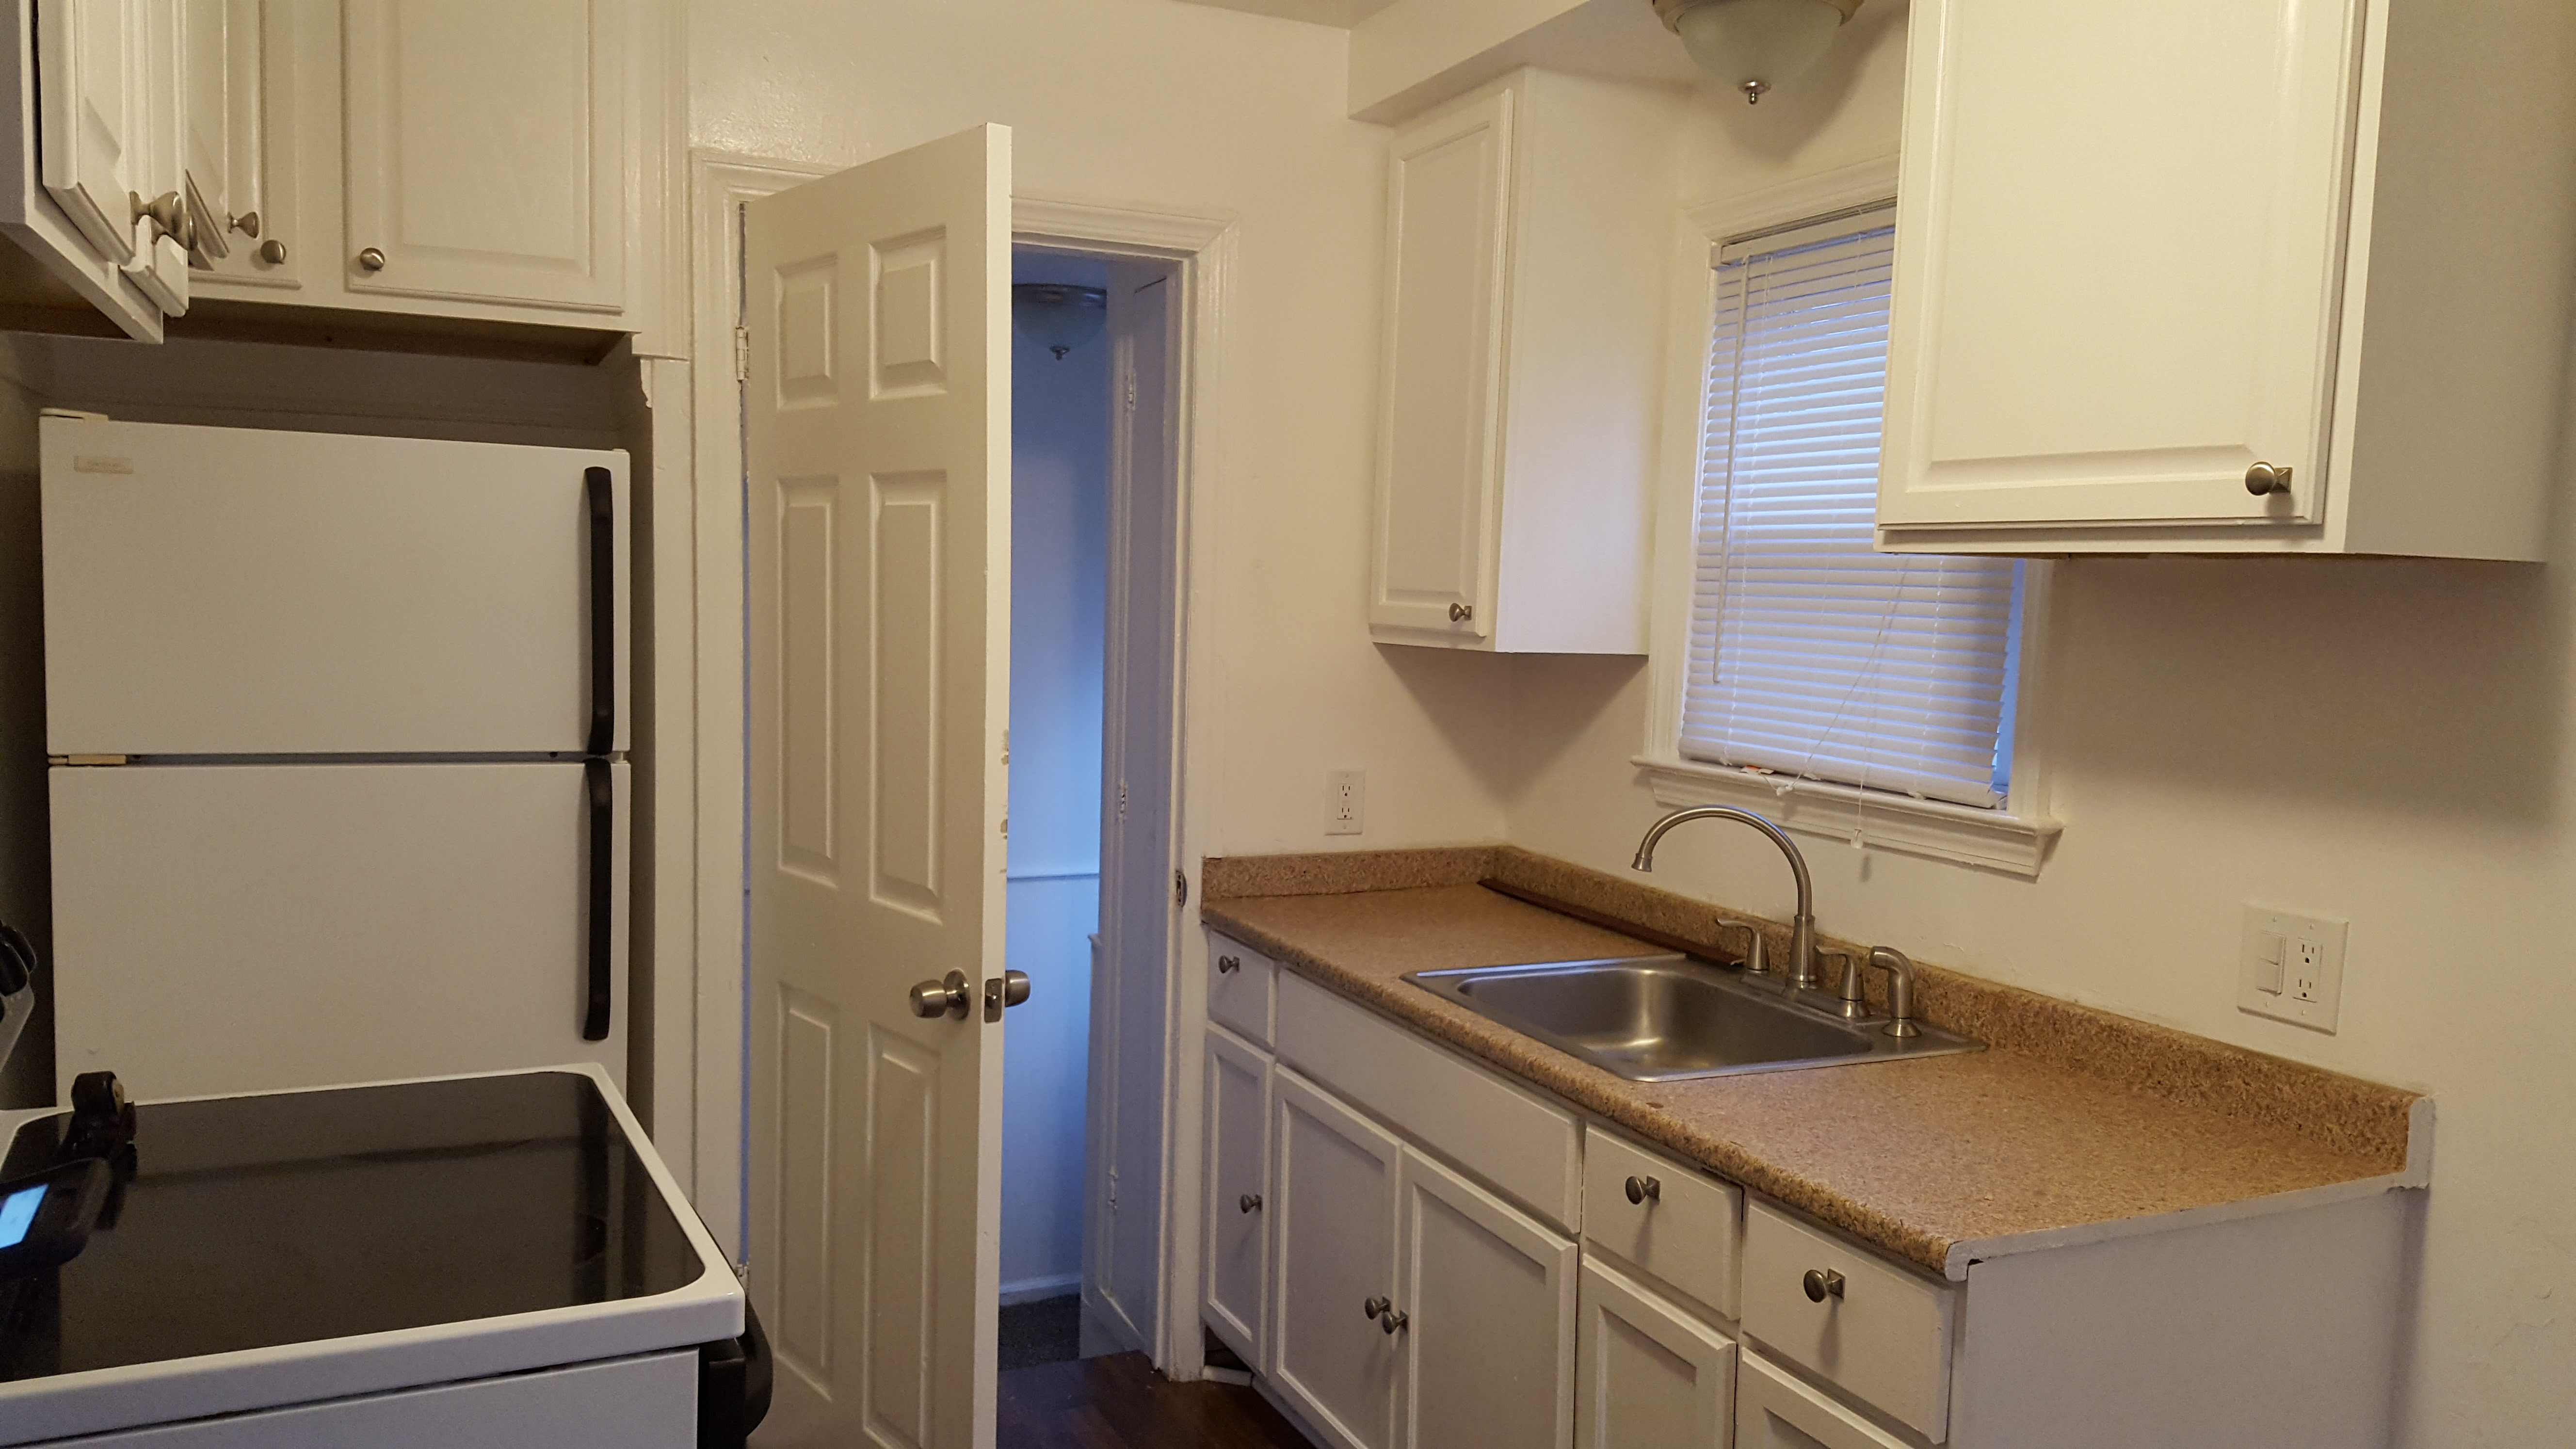 4335 cadieux rd detroit mi 48224 3 bedroom apartment for